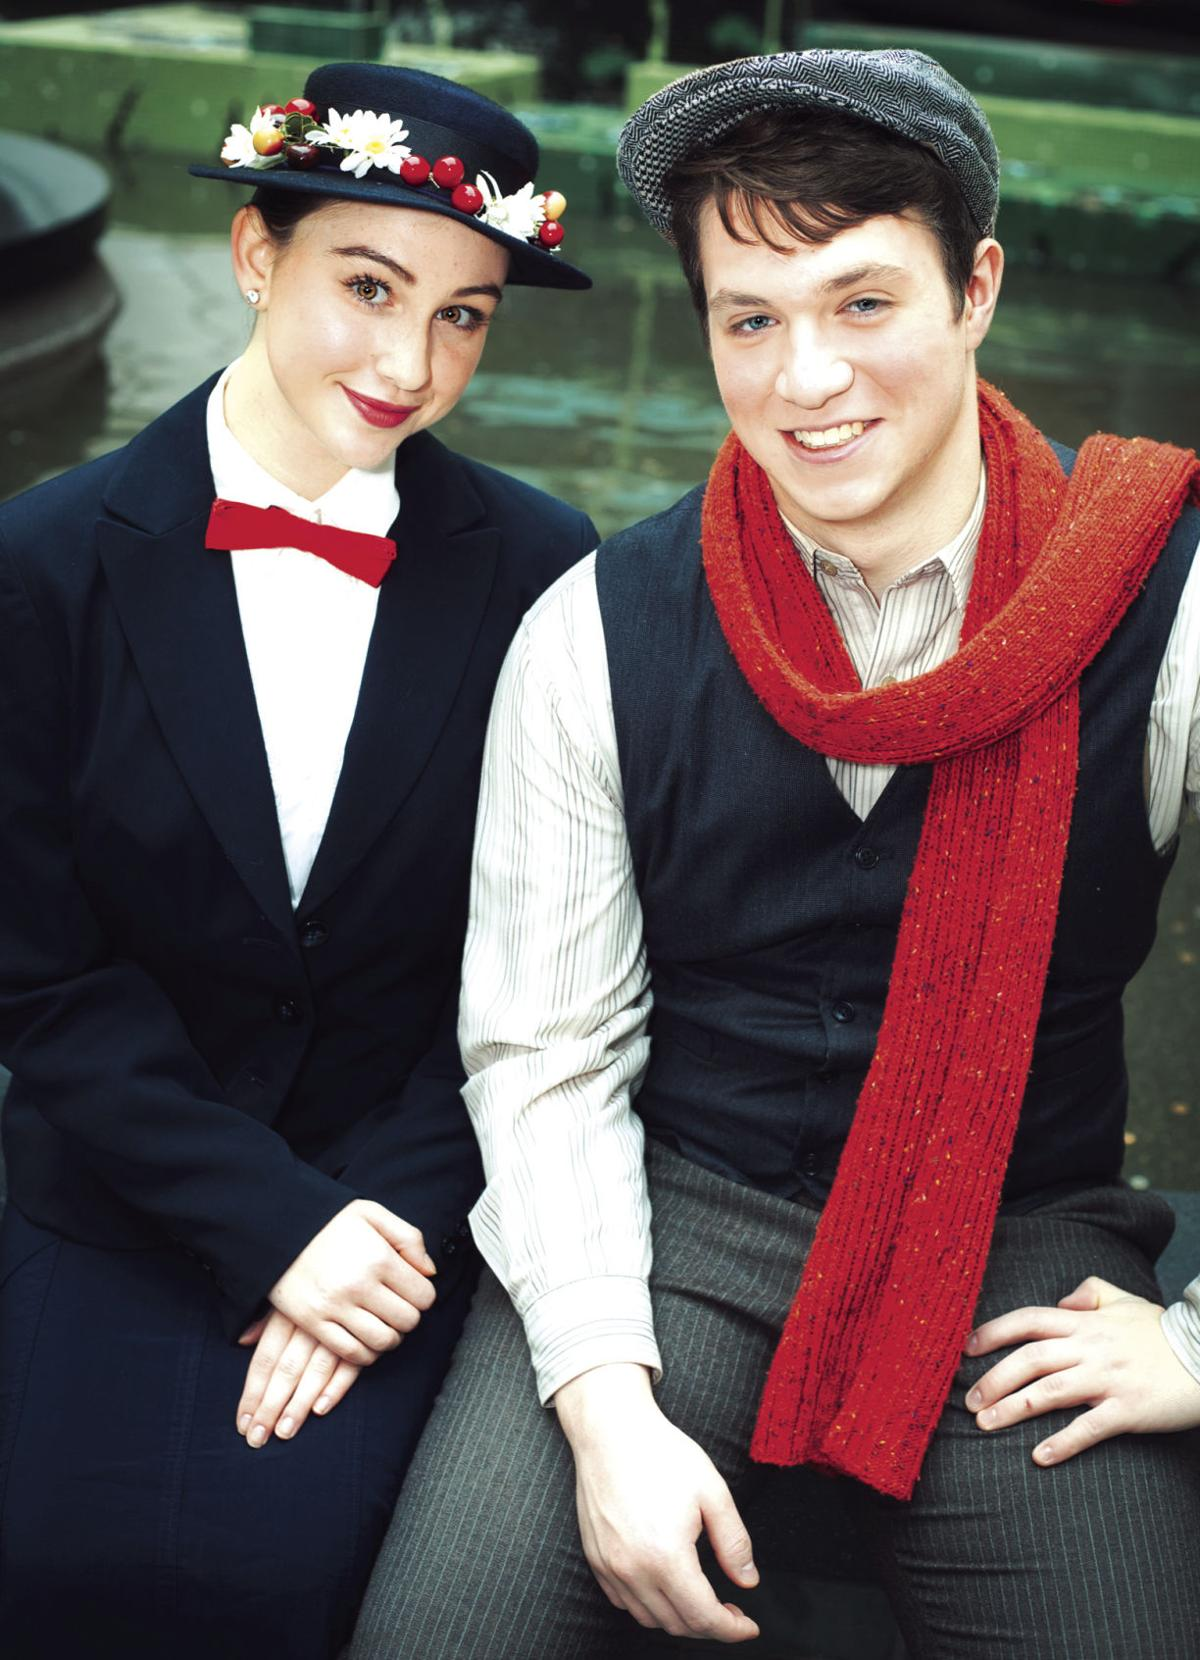 'Mary Poppins Jr.' flies onto stage with area residents